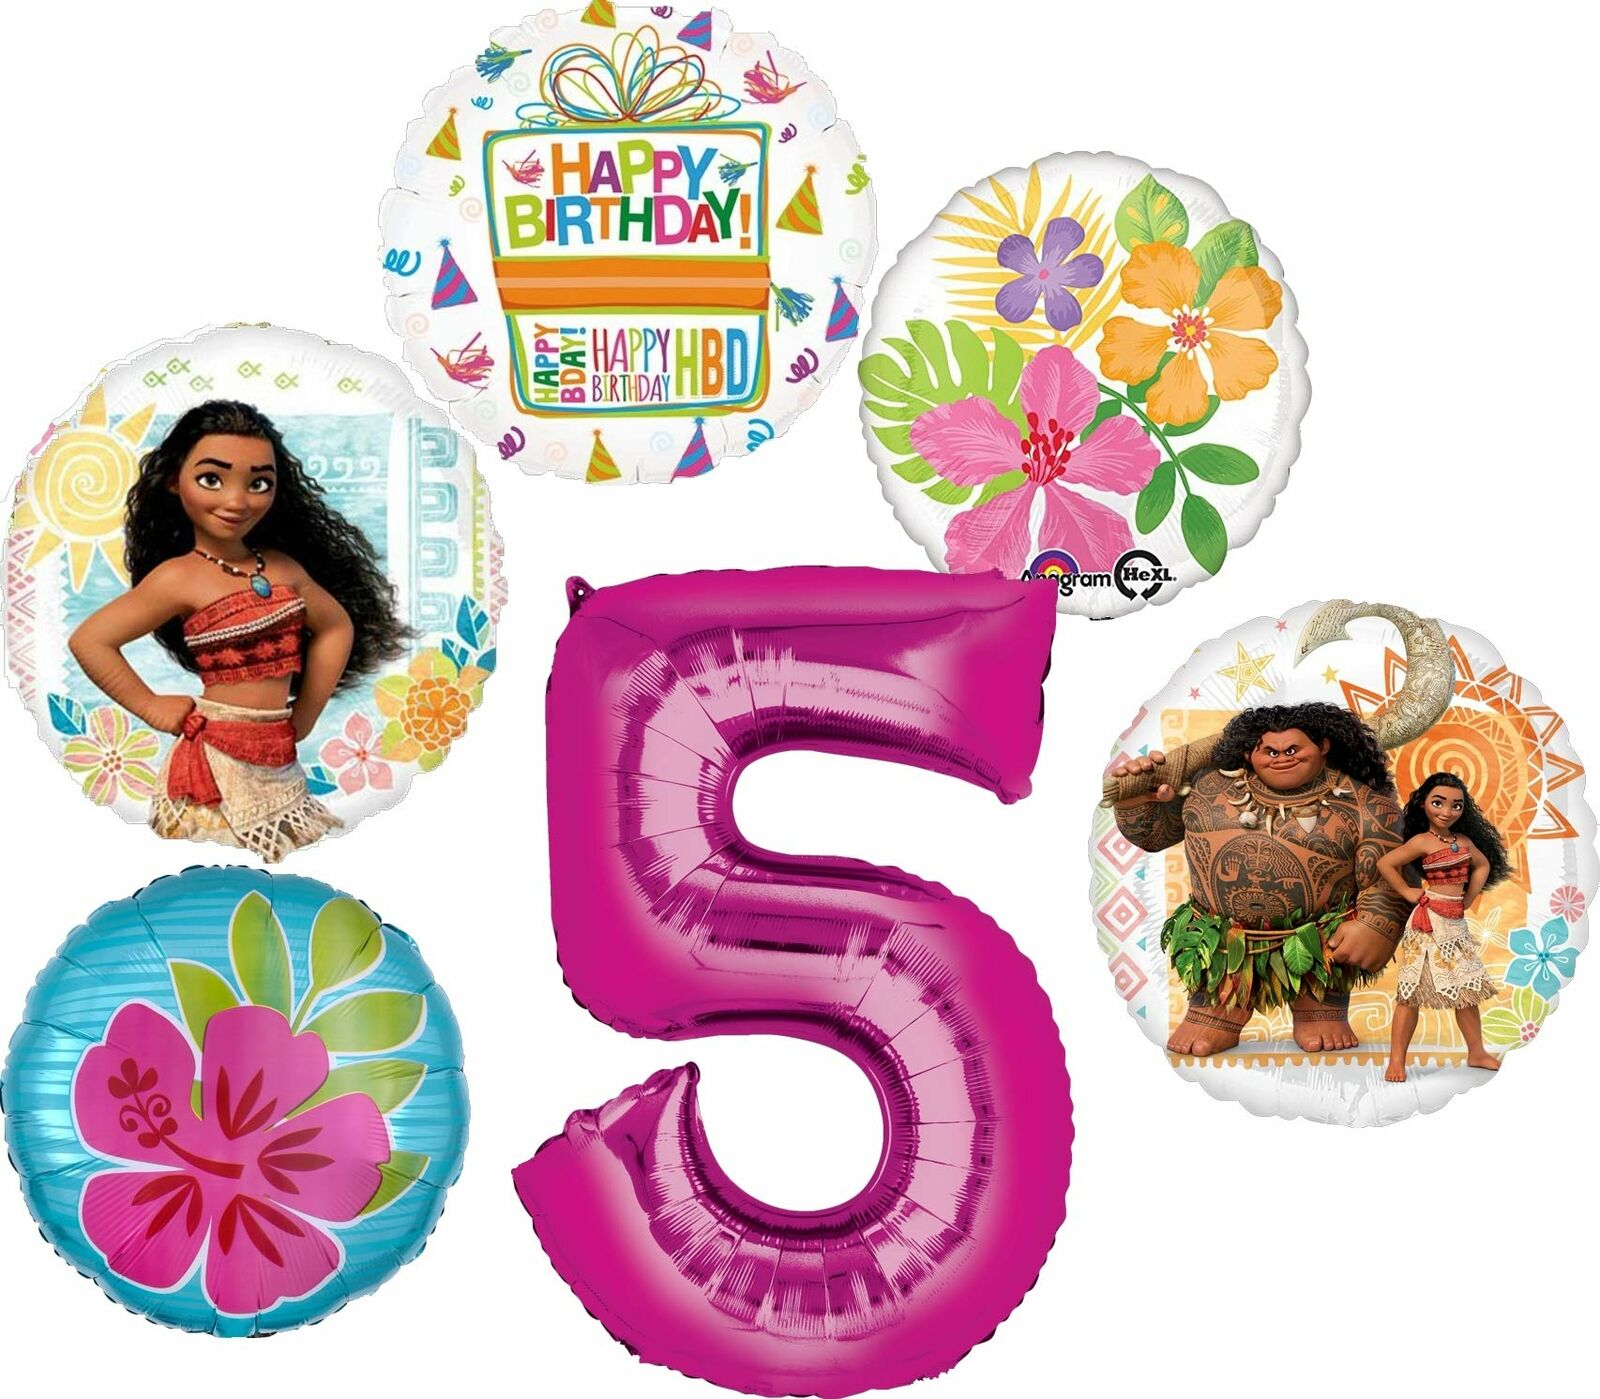 Non Floating 25 Number Balloons 25th Birthday Party Supplies Pink Decorations For Sale Online Ebay